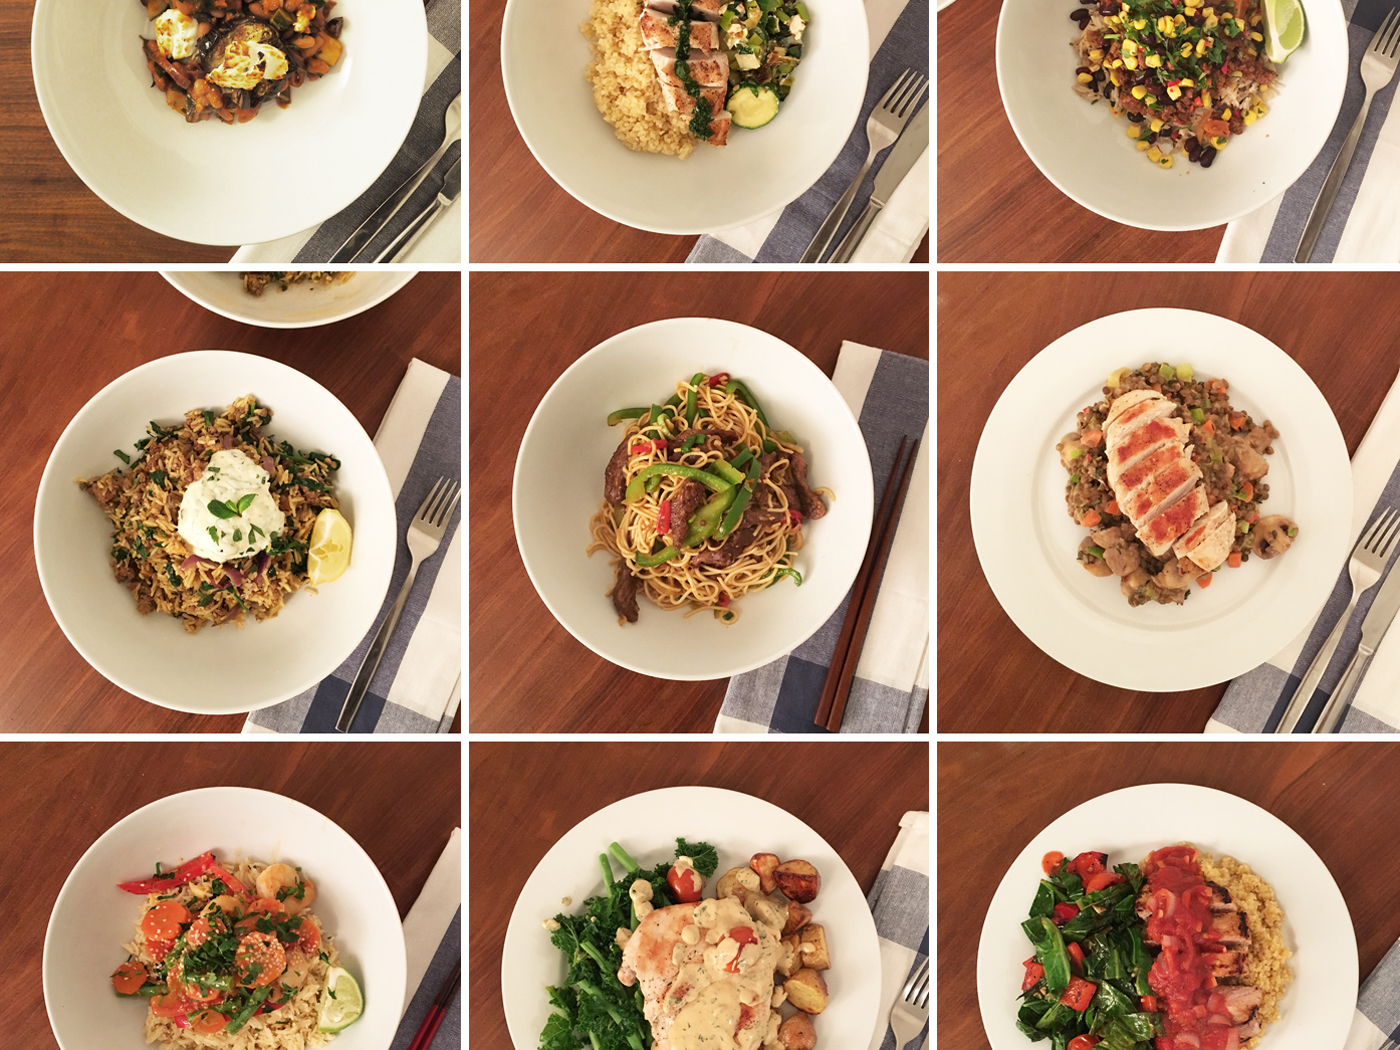 Cheap Meal Kit Delivery Service Hellofresh Refurbished Price